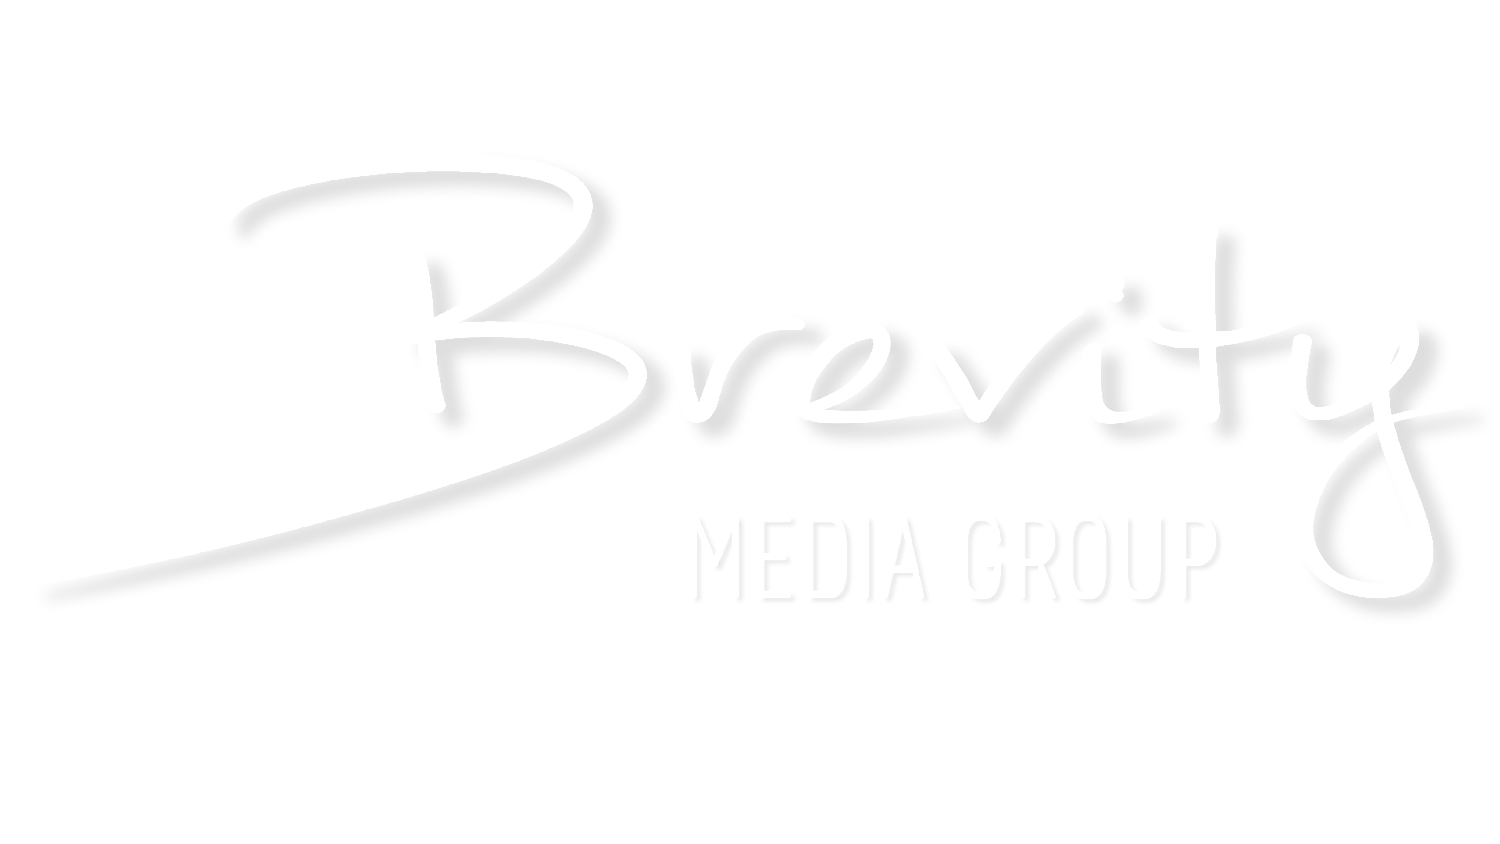 Brevity Media Group